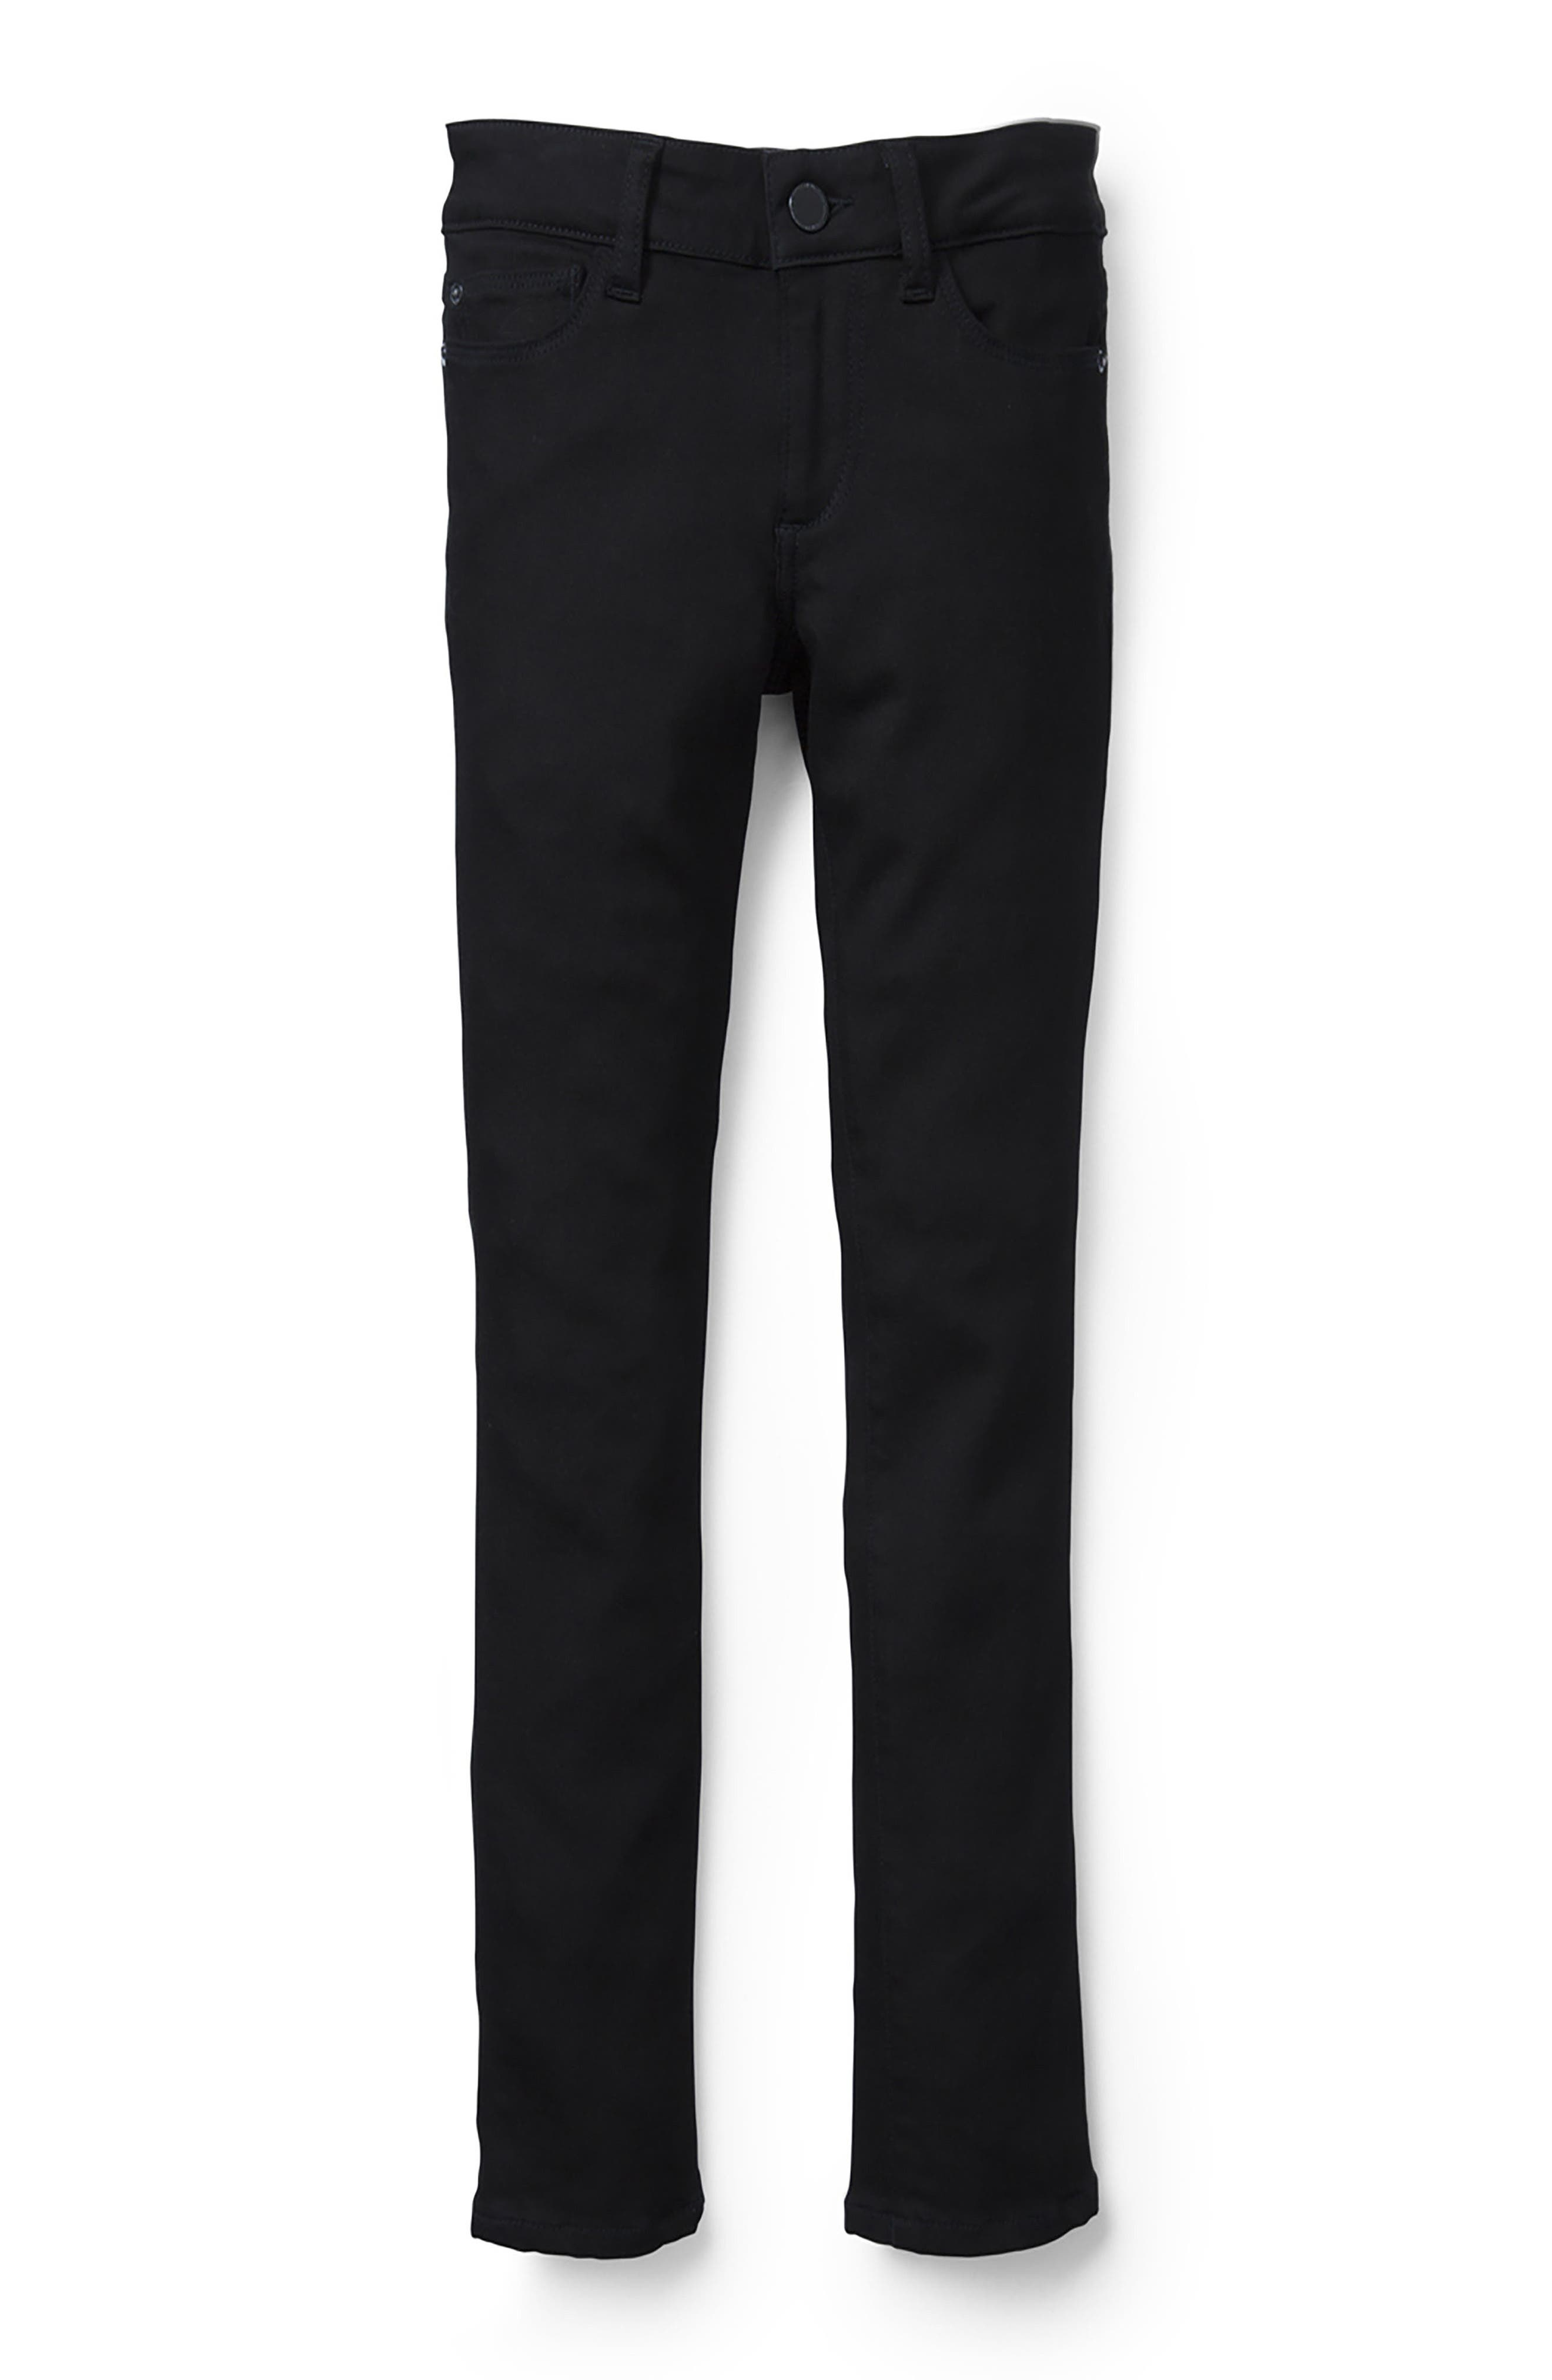 Chloe Skinny Jeans,                         Main,                         color, SHARP